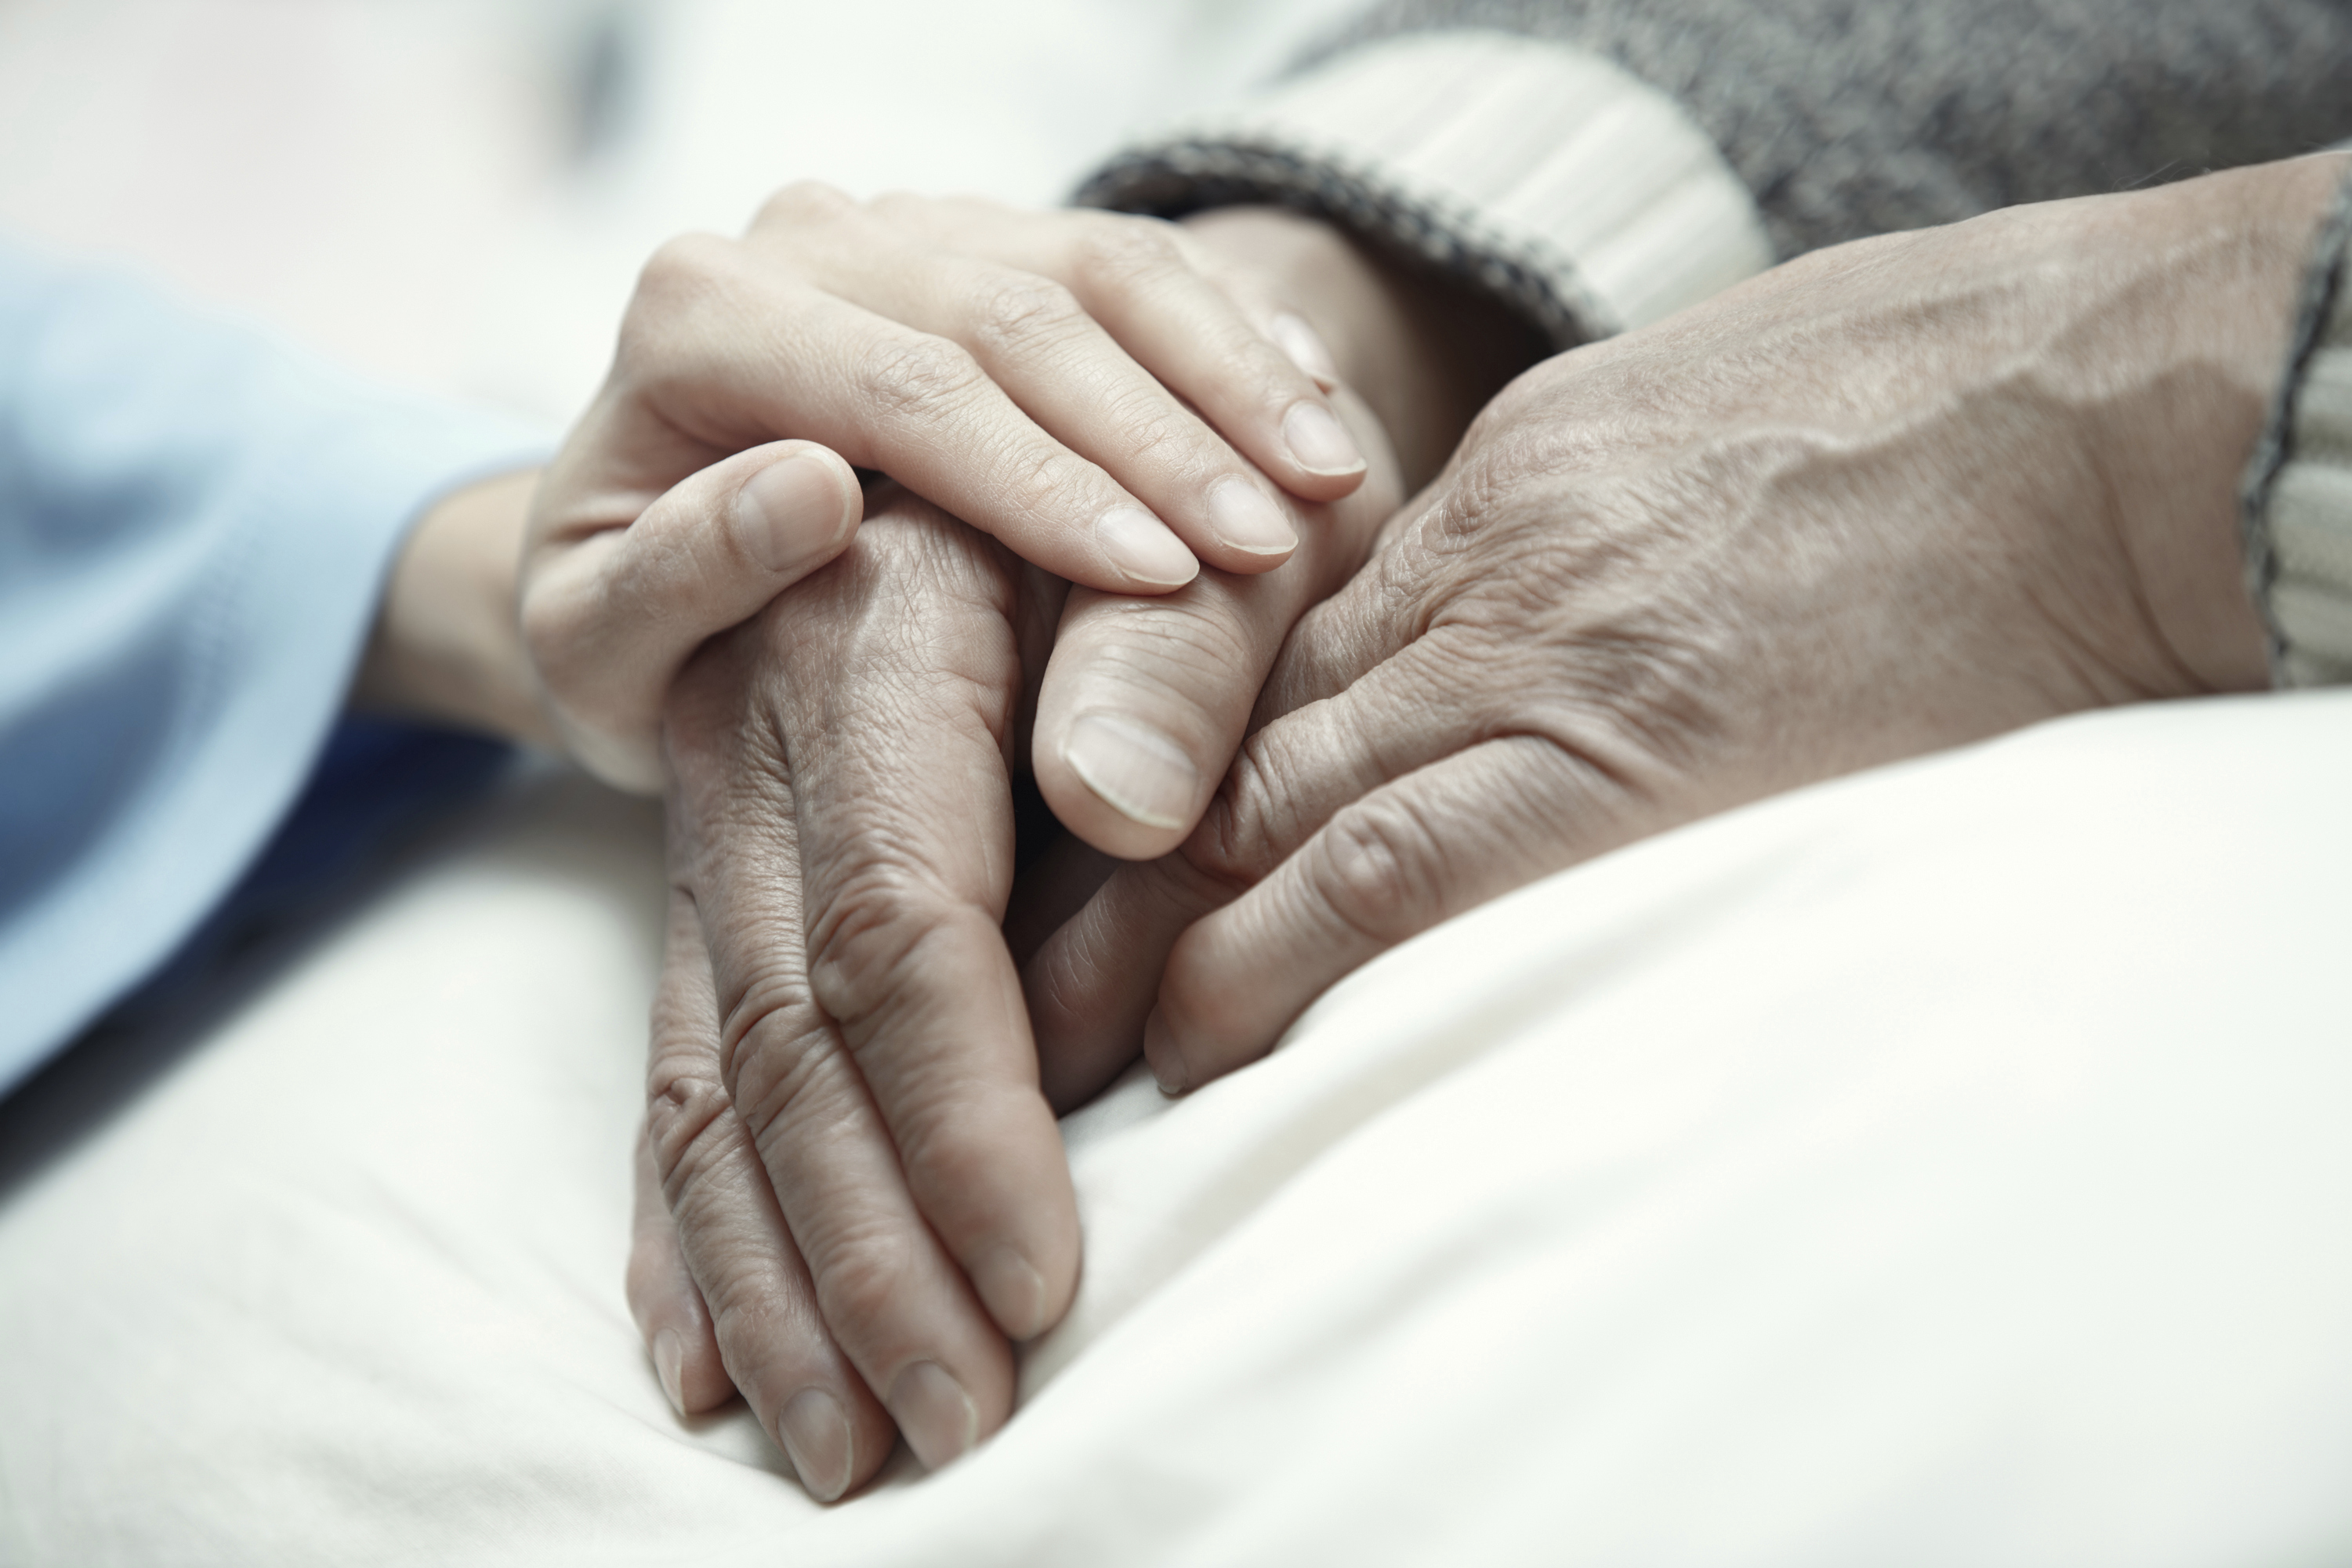 Image of hands, hospice care